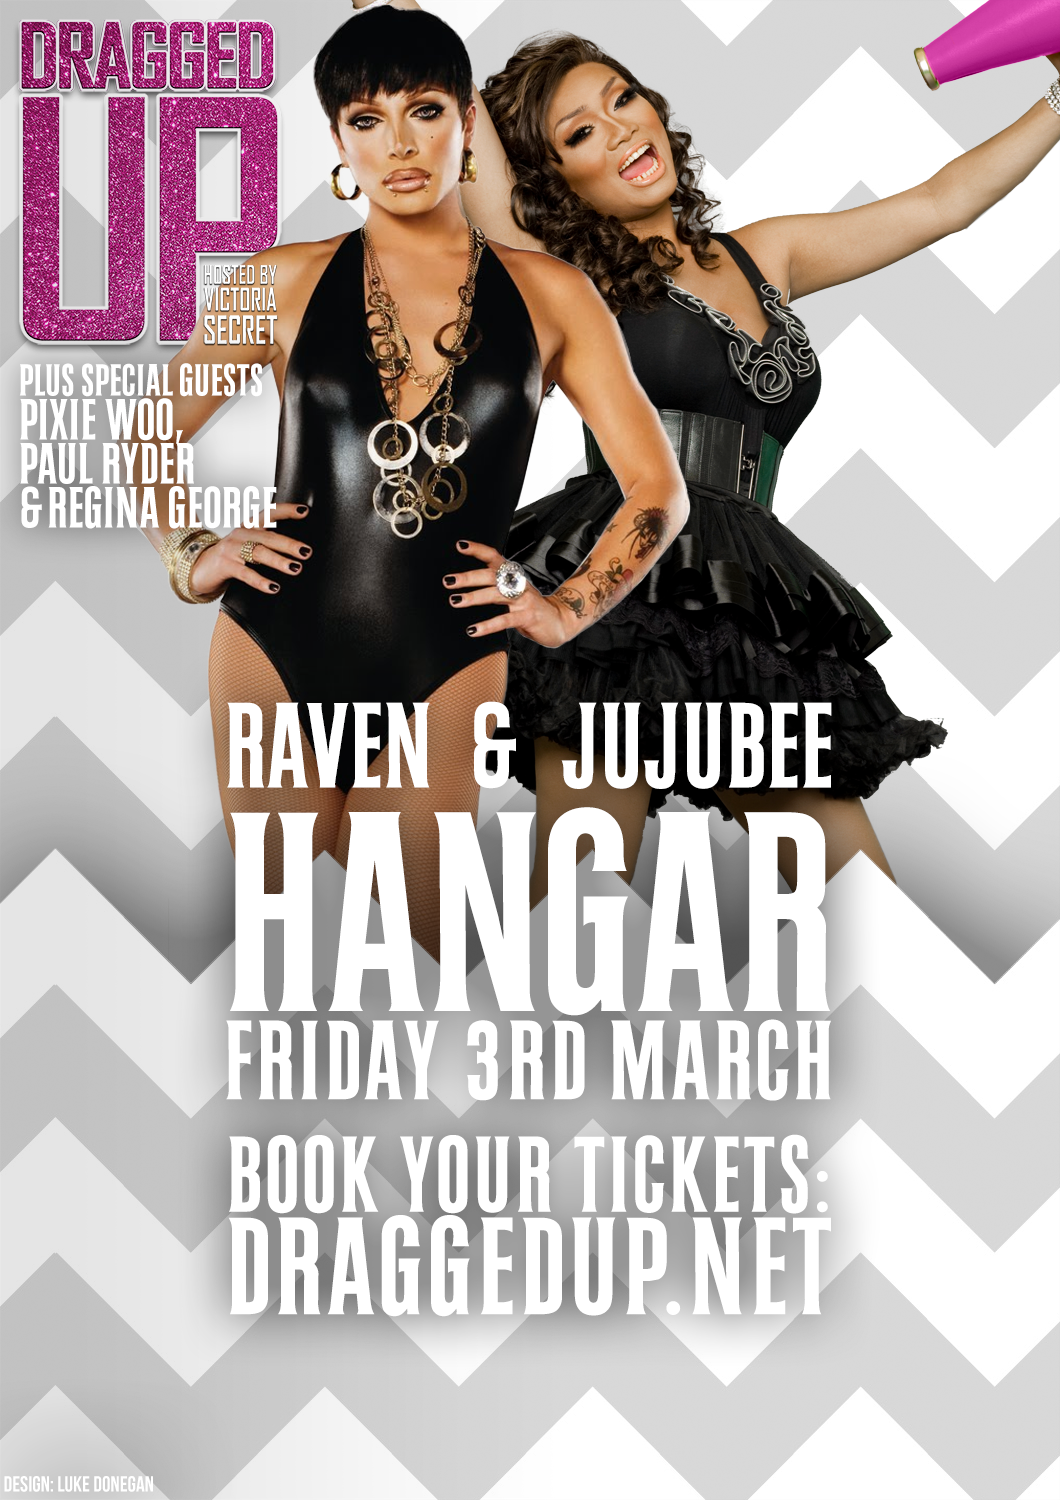 Raven & Jujubee - Poster v1.1.png